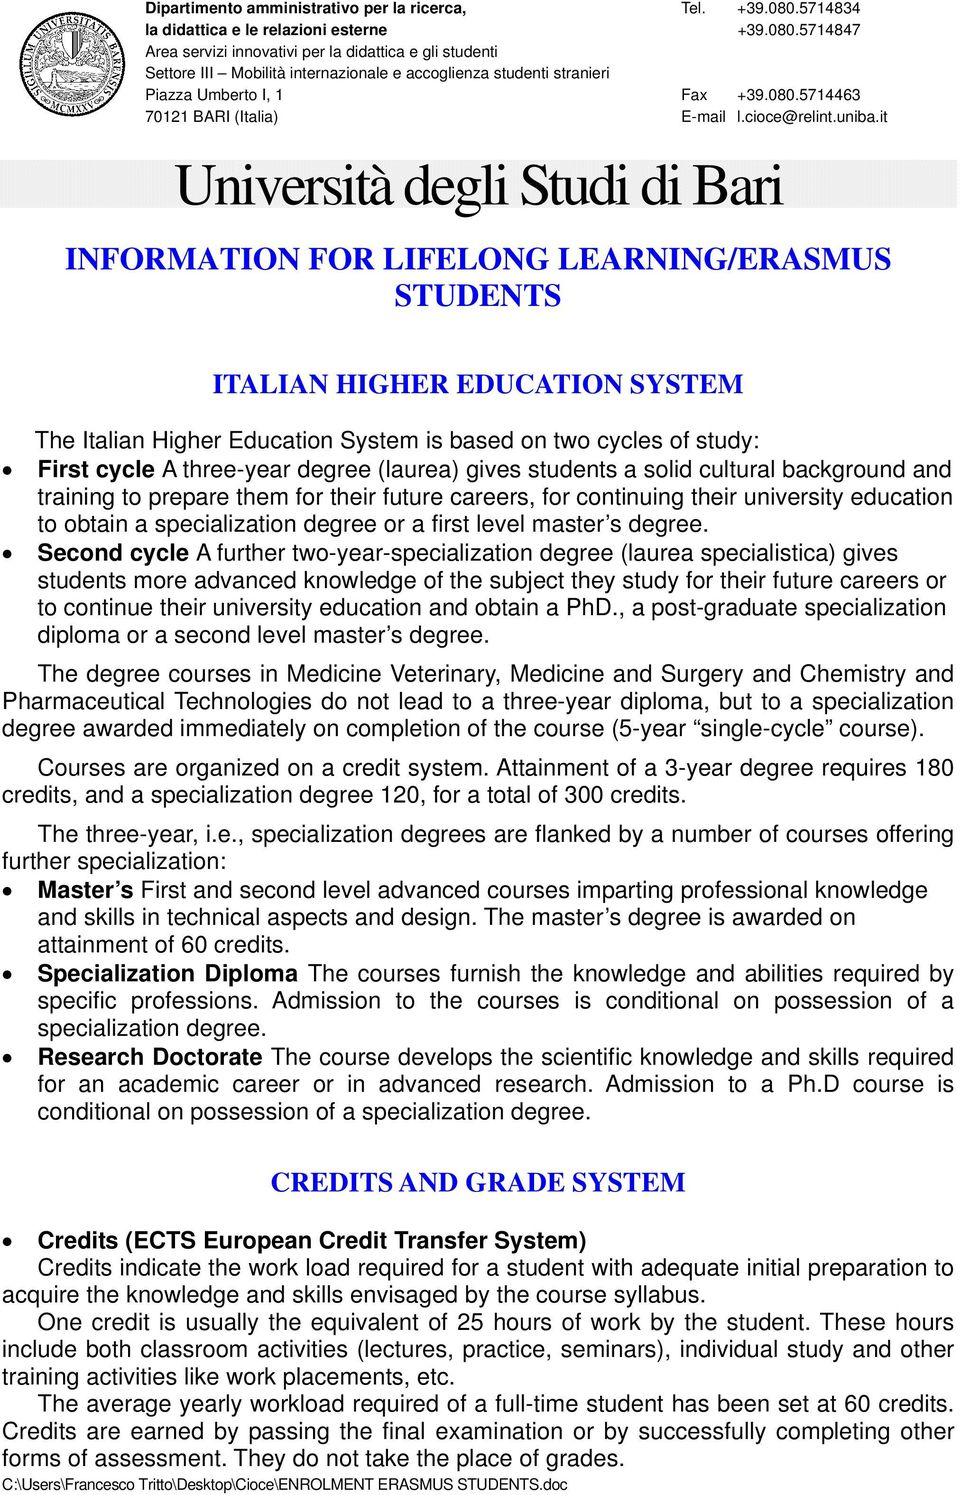 it Università degli Studi di Bari INFORMATION FOR LIFELONG LEARNING/ERASMUS STUDENTS ITALIAN HIGHER EDUCATION SYSTEM The Italian Higher Education System is based on two cycles of study: First cycle A